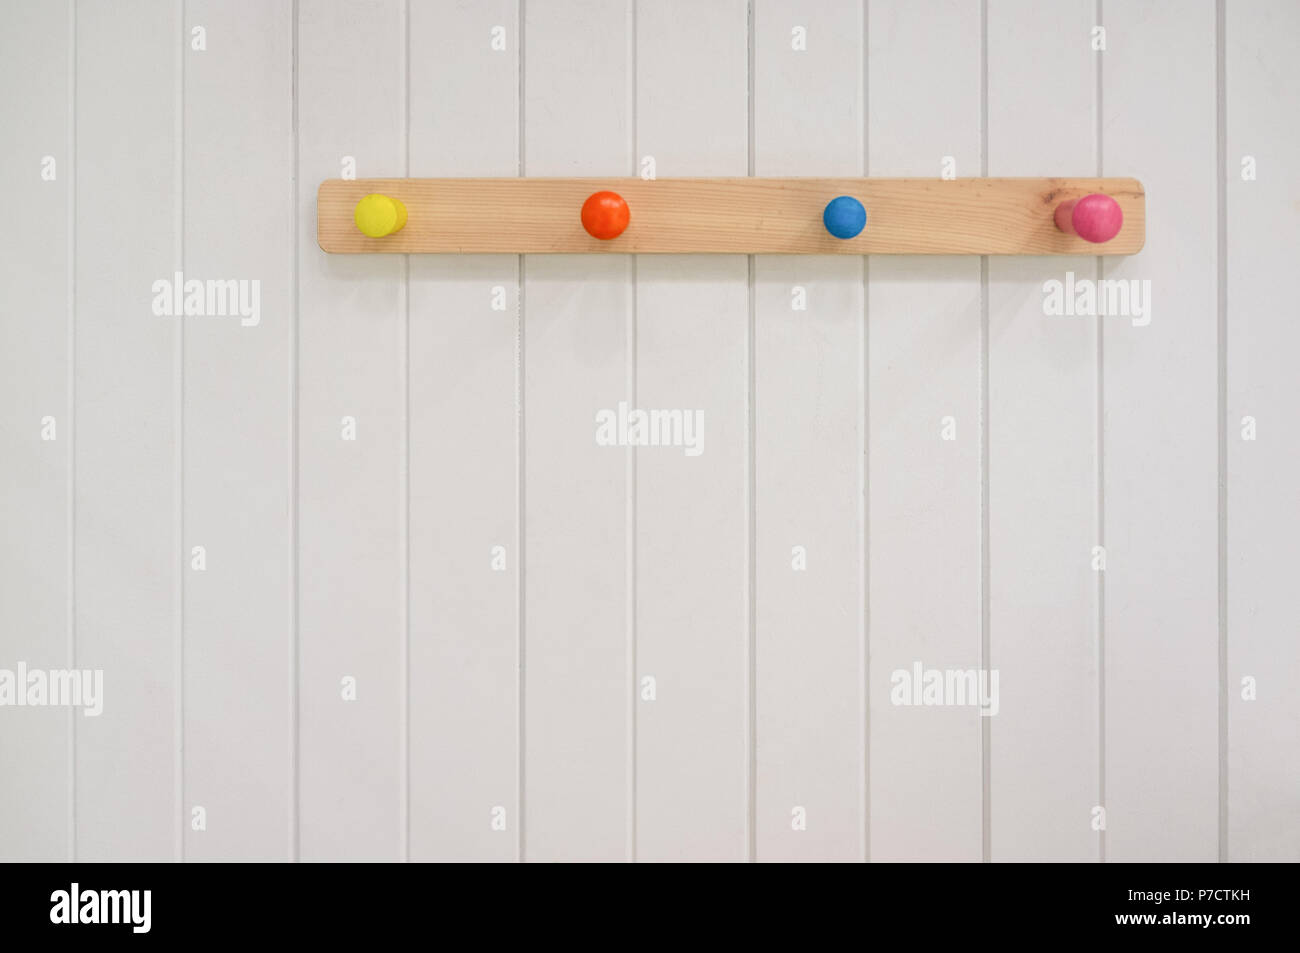 Wall Hangers Stock Photos & Wall Hangers Stock Images - Alamy